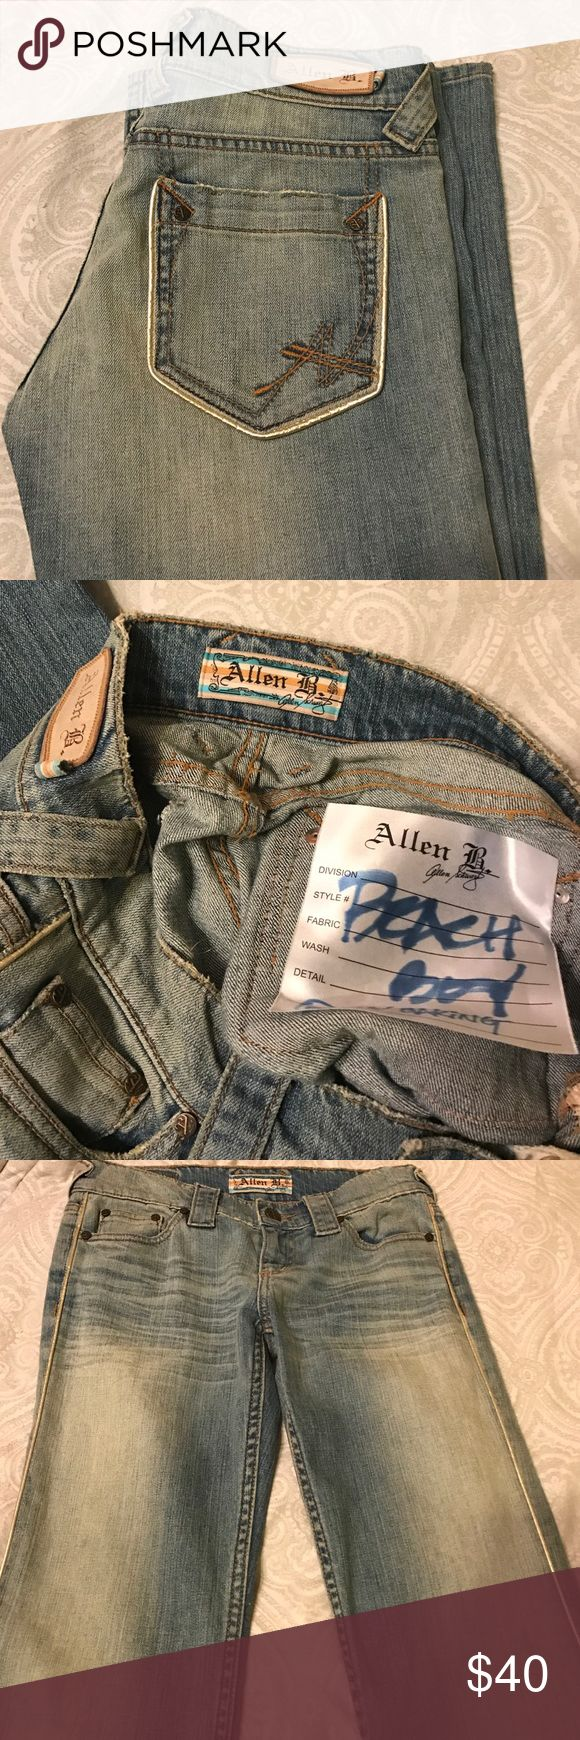 """BOGO Allen B silver trimmed jeans WOW! These jeans are amazing! Light denim with factory fading and factory distressed pockets and cuffs. No size or material tags, surely a sample. Sticker inside says """"beach boy w/ baking"""" - no idea what that is supposed to mean 😂 Seems to be a size 27 or 28. waist measurements are 14.5"""" with dip, 15.25"""" pulled straight. 8"""" rise. Inseam is 34.5"""". 9.5"""" flat cuff. Check out the rest of my closet for a BOGO sale! ABS Allen Schwartz Jeans Flare & Wide Leg"""